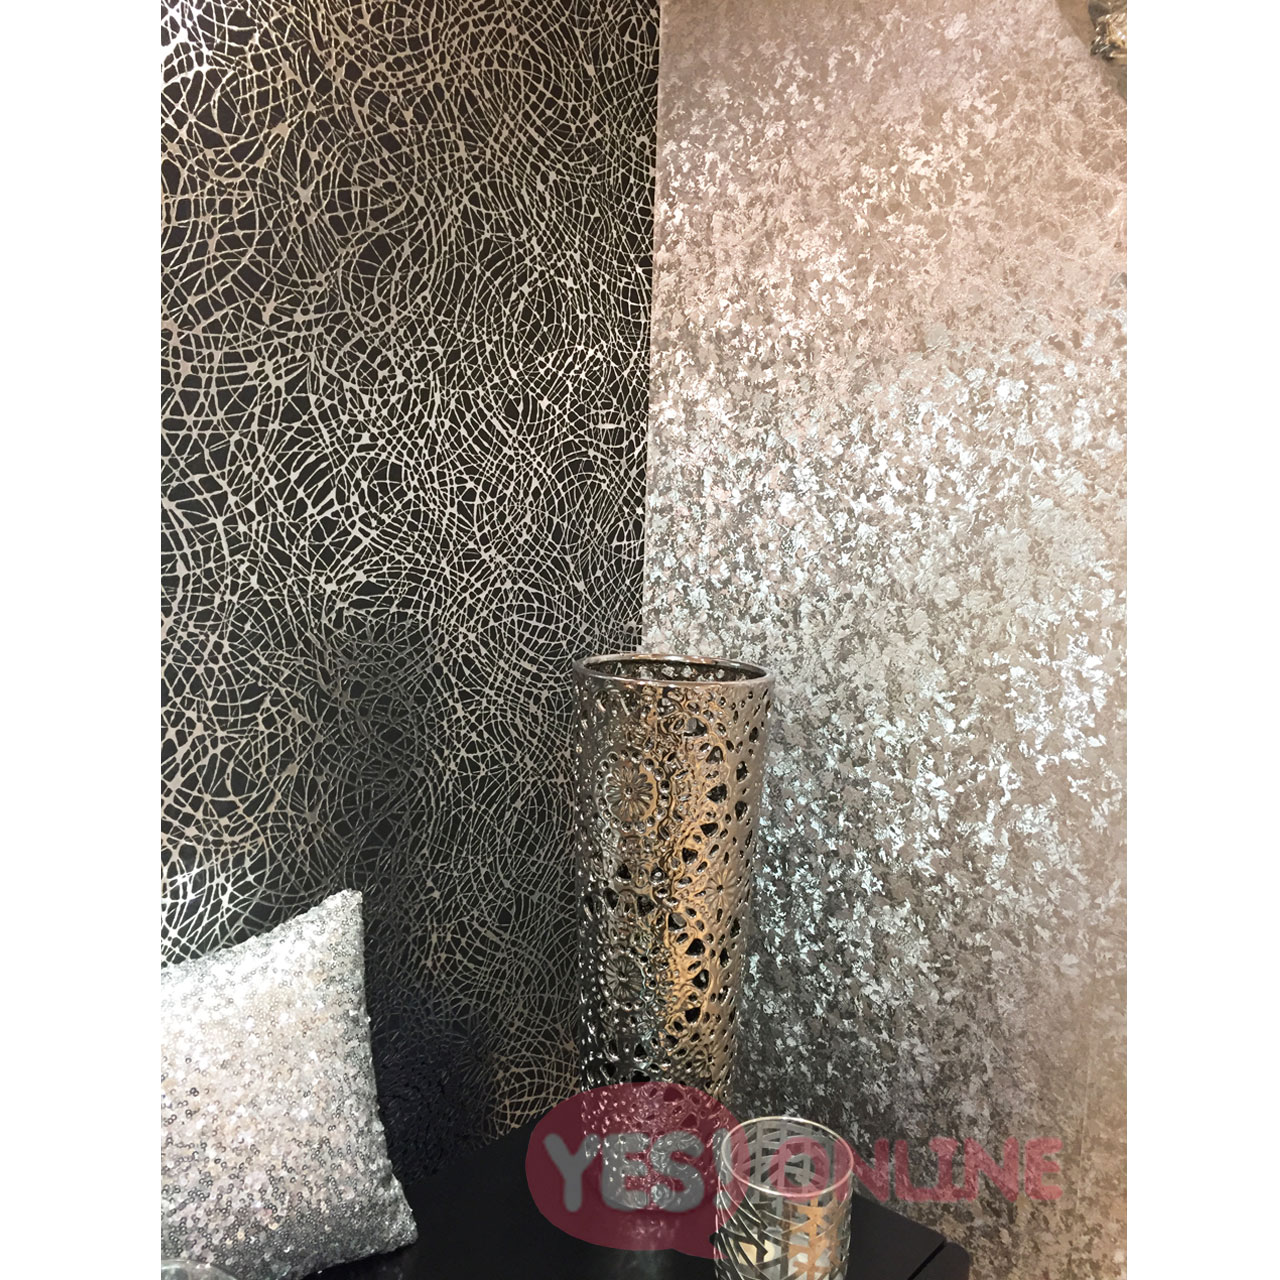 Foil Wallpaper Shiny Metallic Luxury Weighted Vinyl